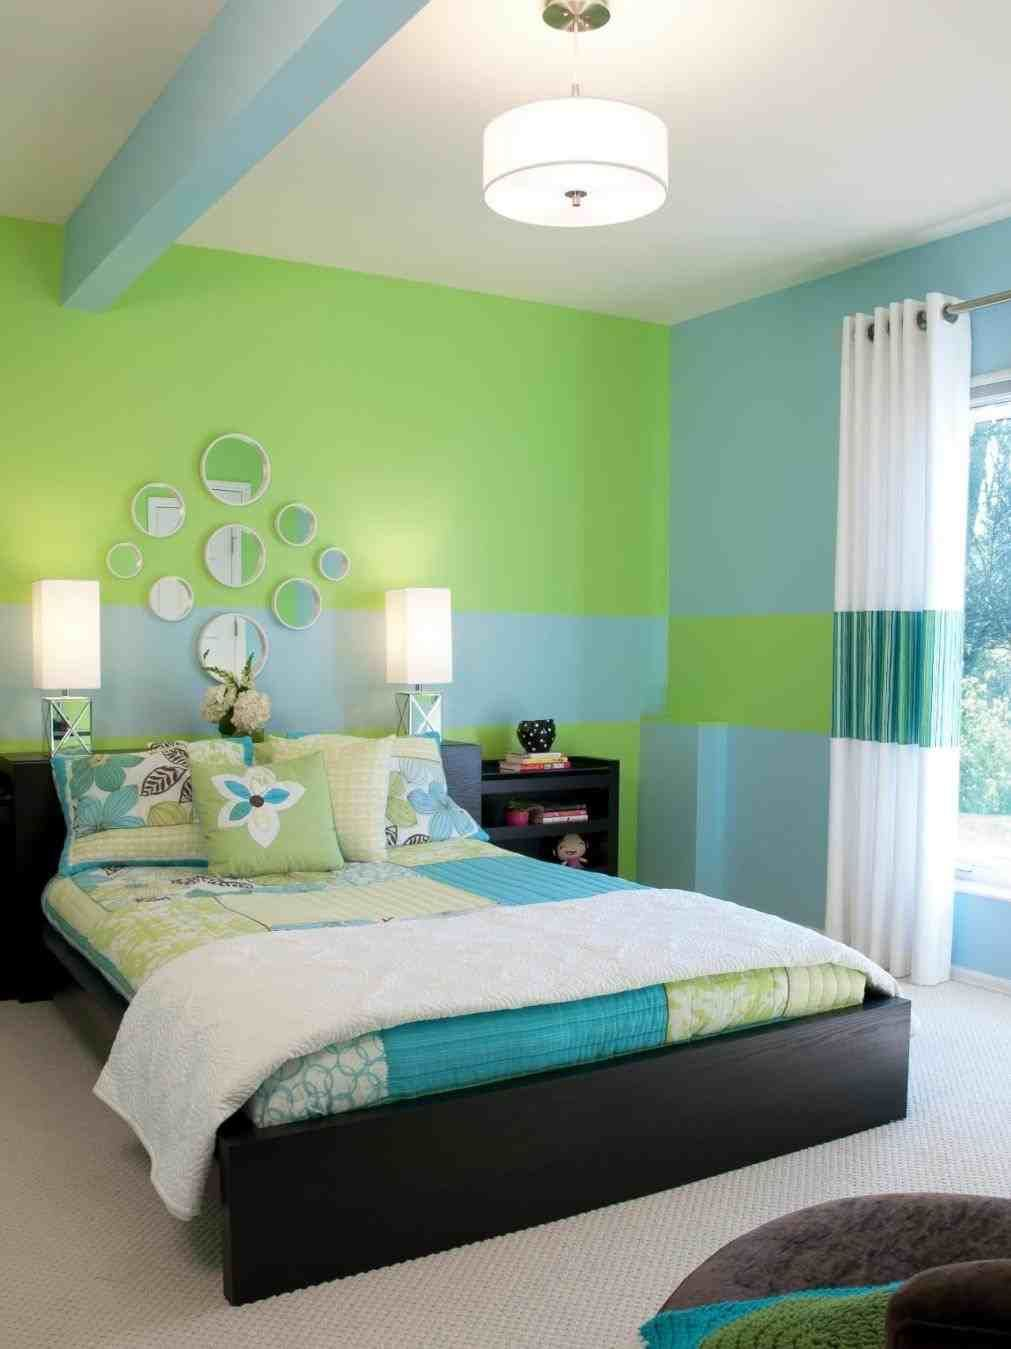 simple room decoration ideas for small bedroom Kids